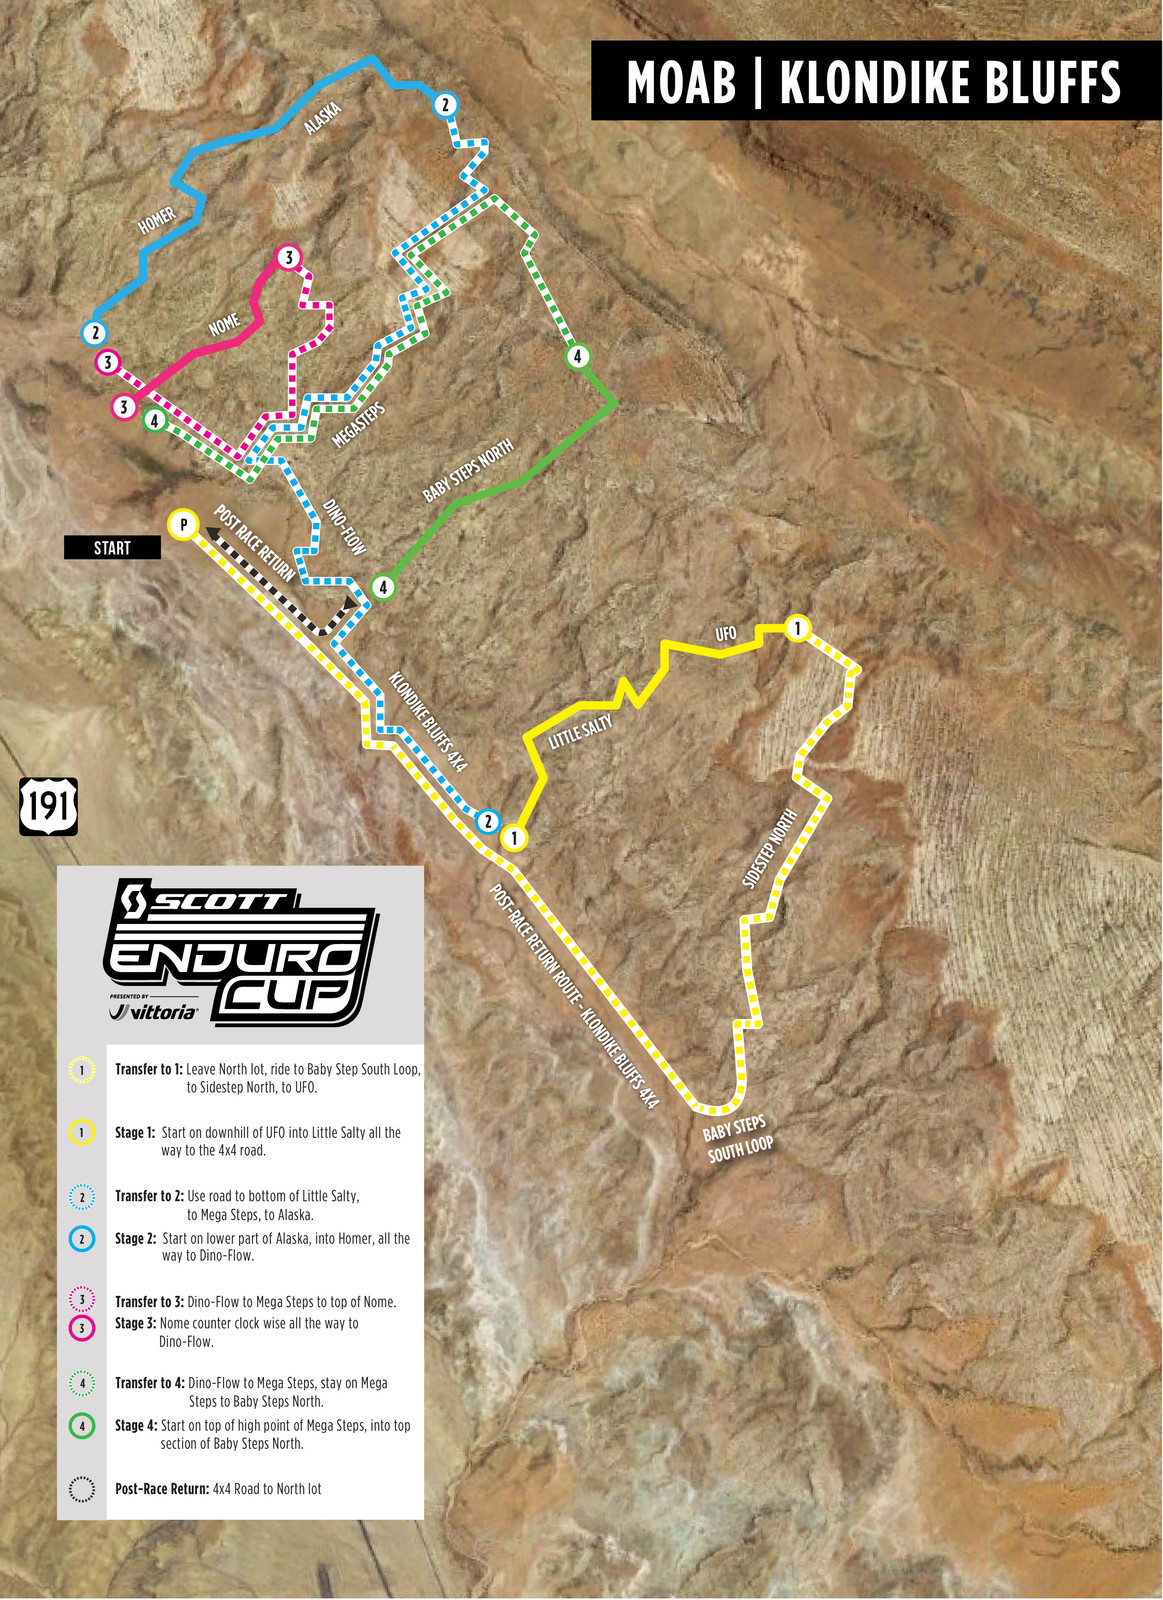 Moab Course Map Released—SCOTT Enduro Cup